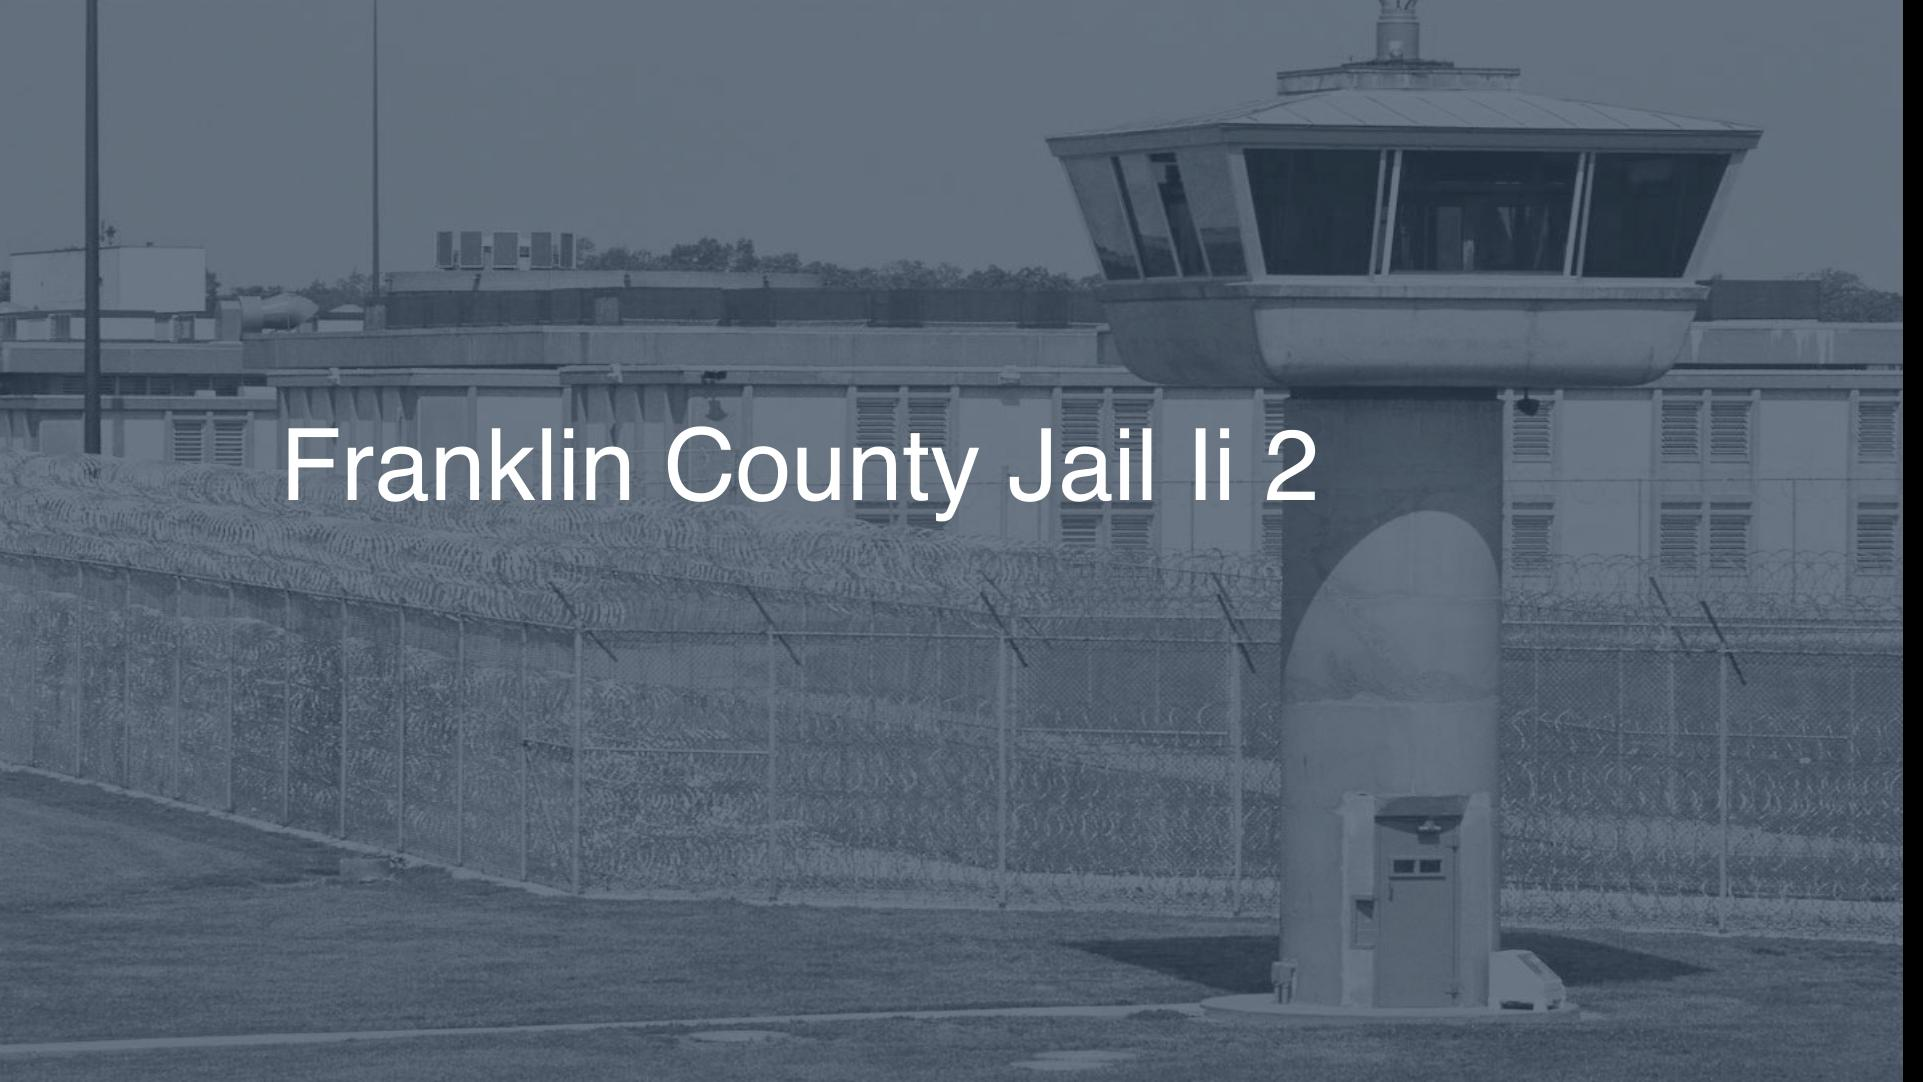 Franklin County Jail II | Pigeonly - Inmate Search, Locate